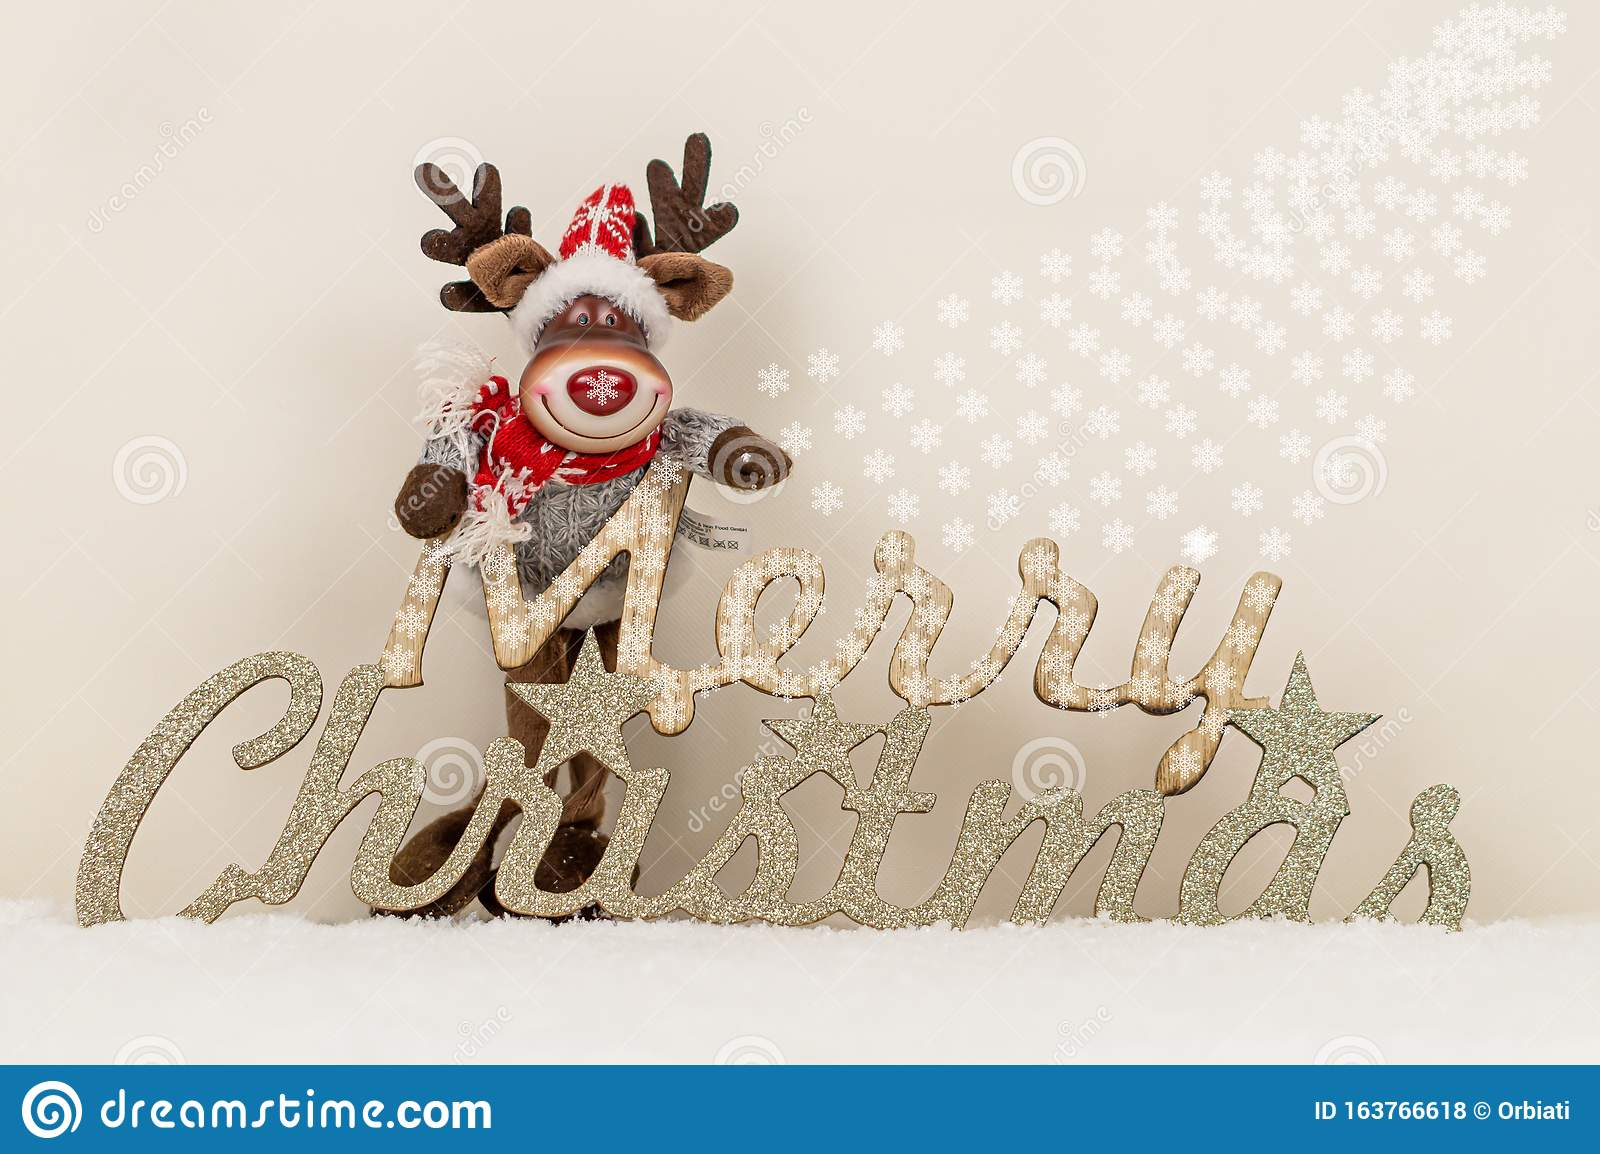 christmas wallpaper merry christmas inscription reindeer snowflake decoration snowy background reindeer merry 163766618